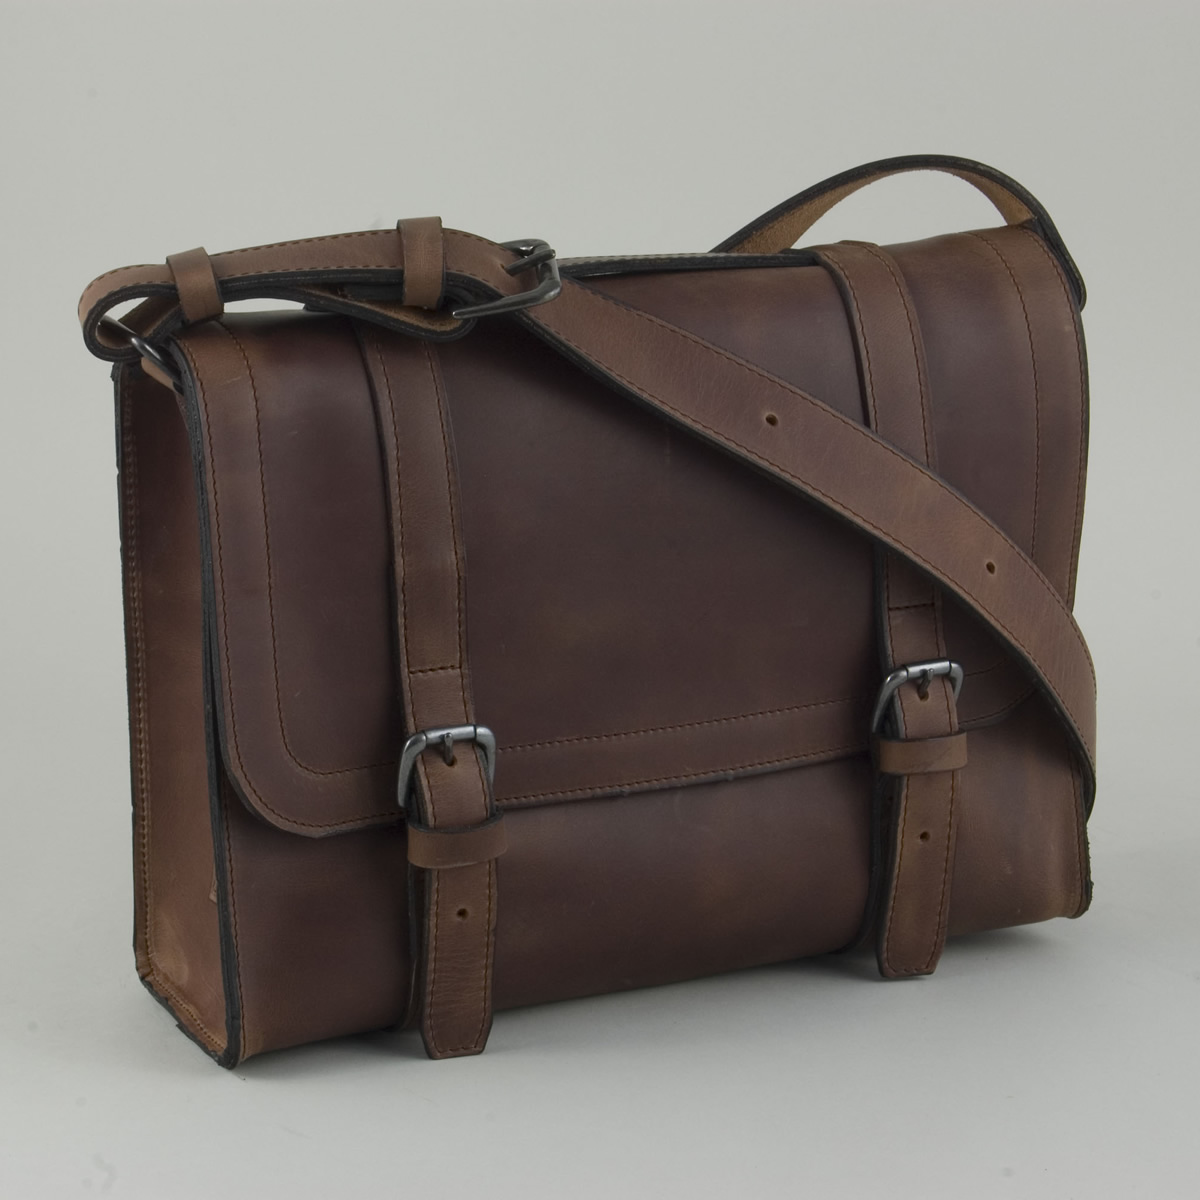 The Small Satchel